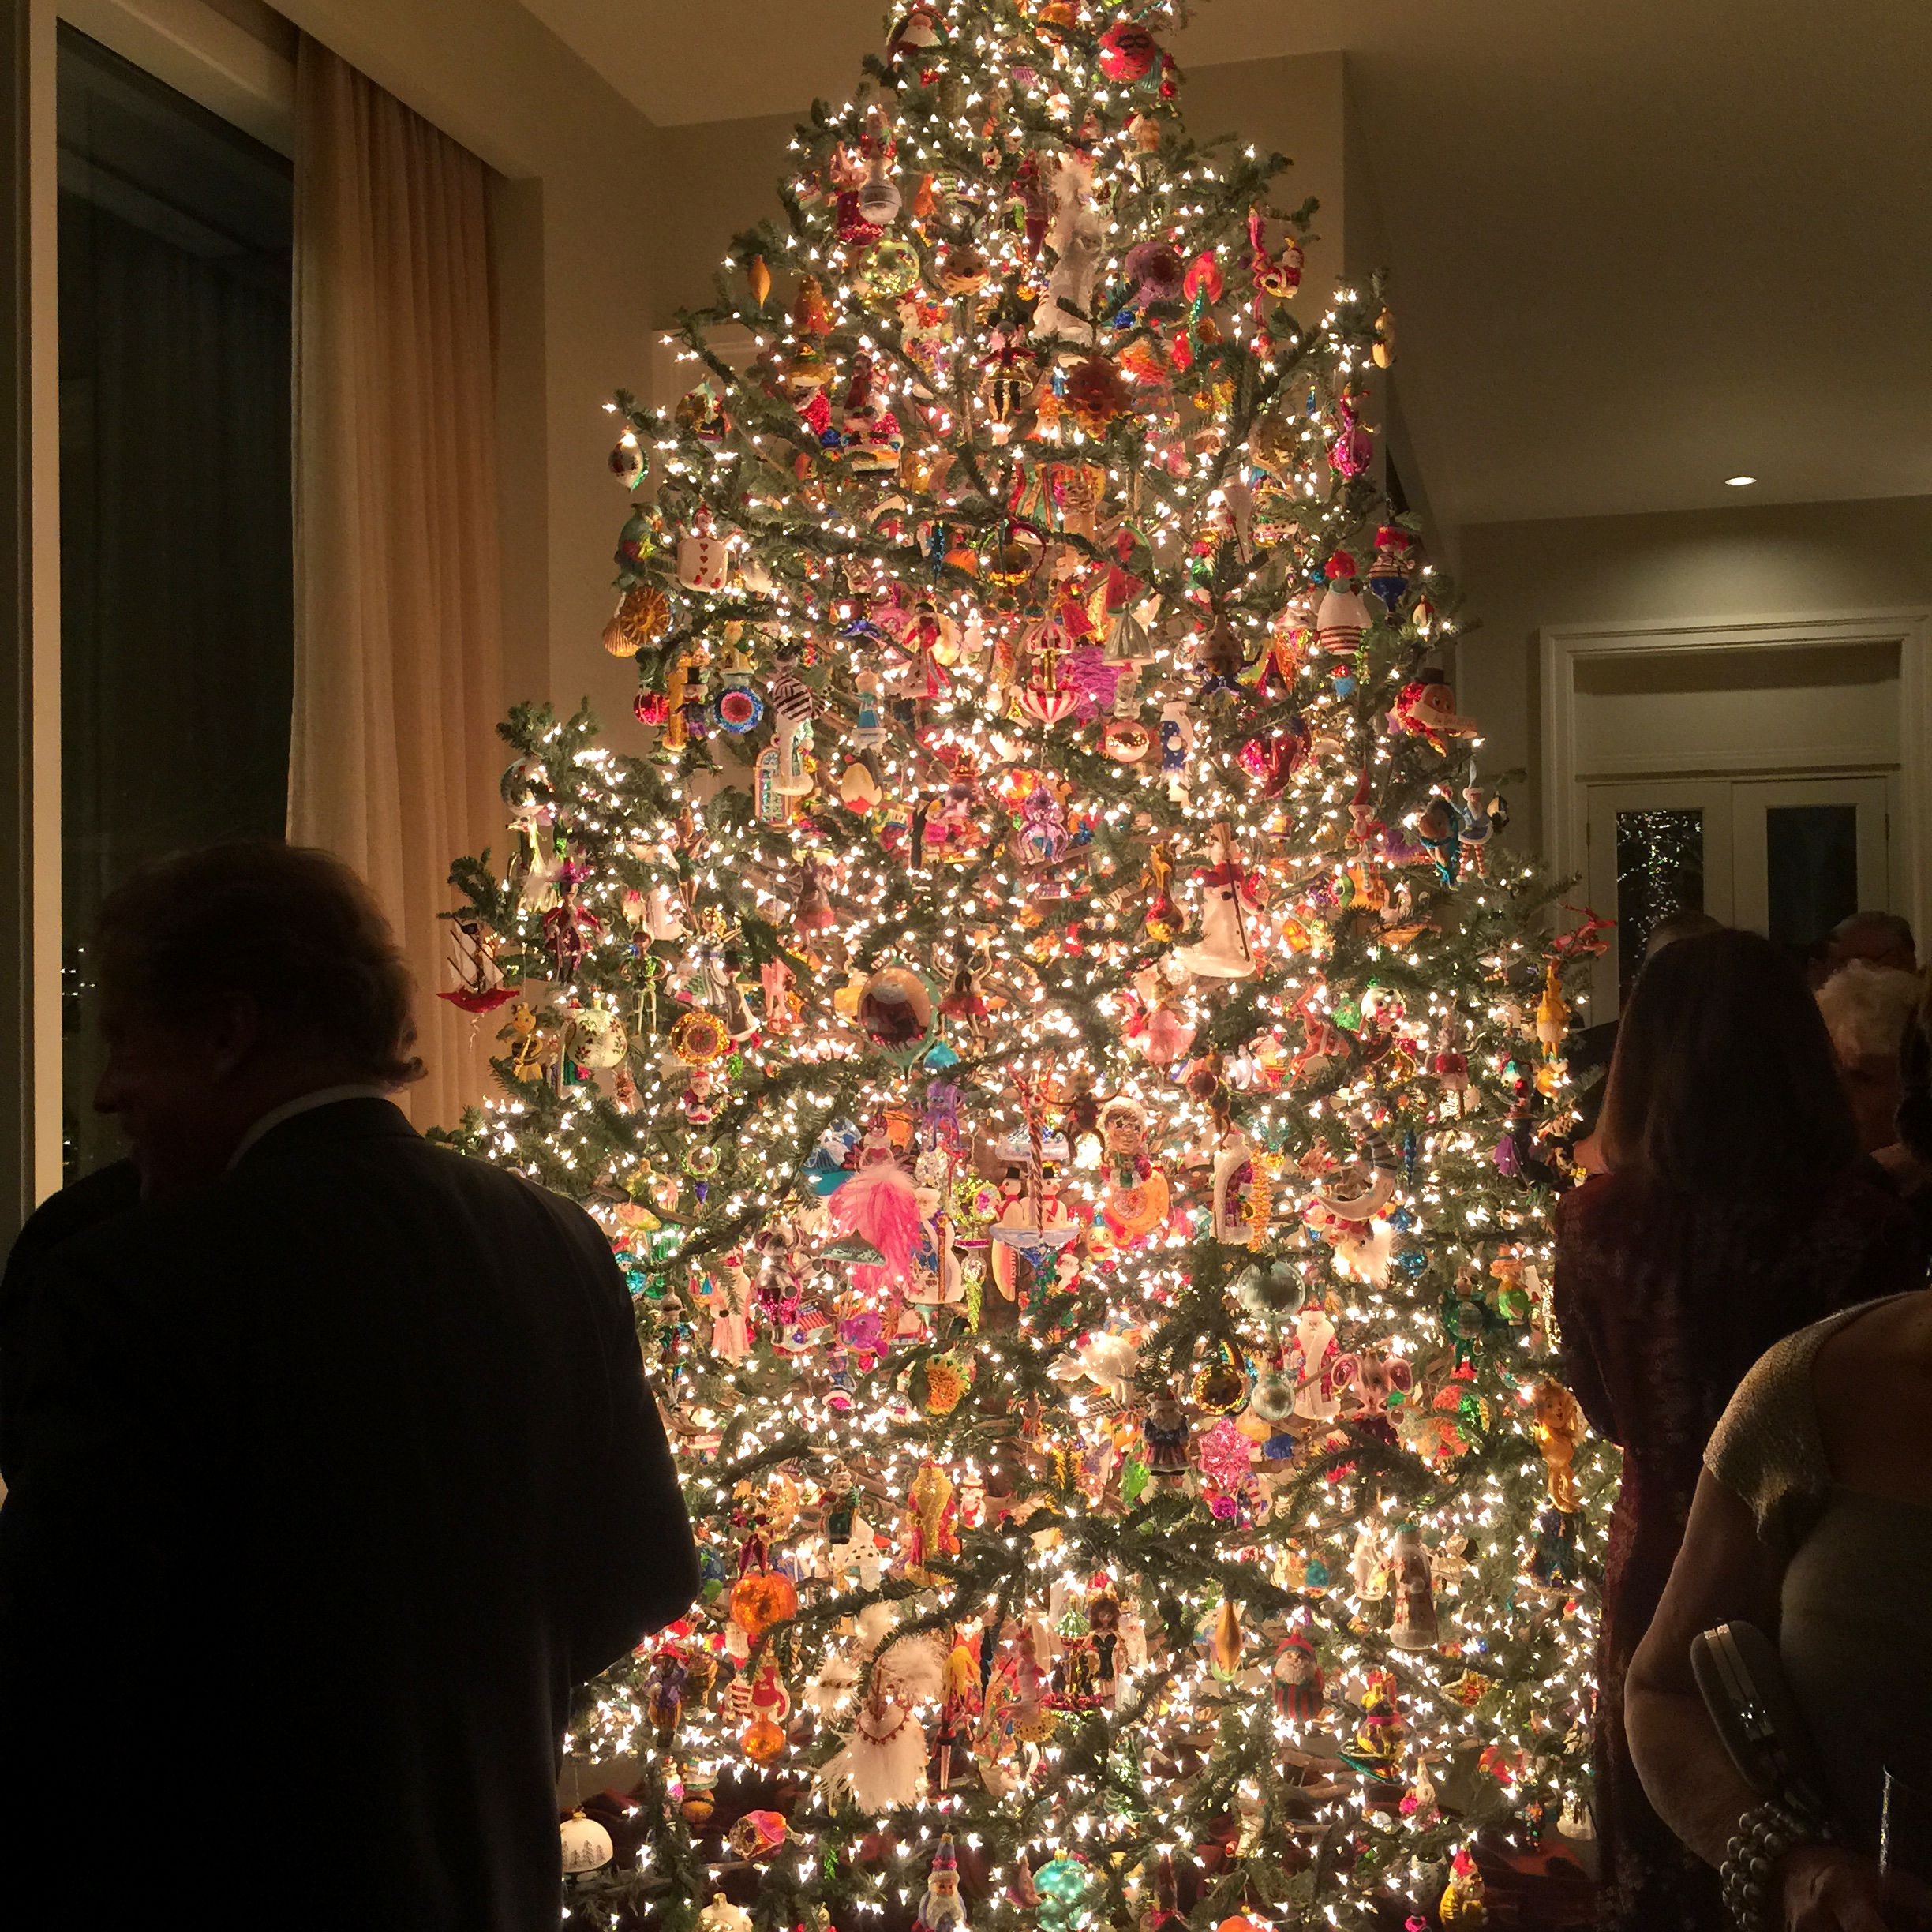 This Is Not Your Grandma S Christmas Tree For One Thing She Probably Couldn T Afford It The Washington Post